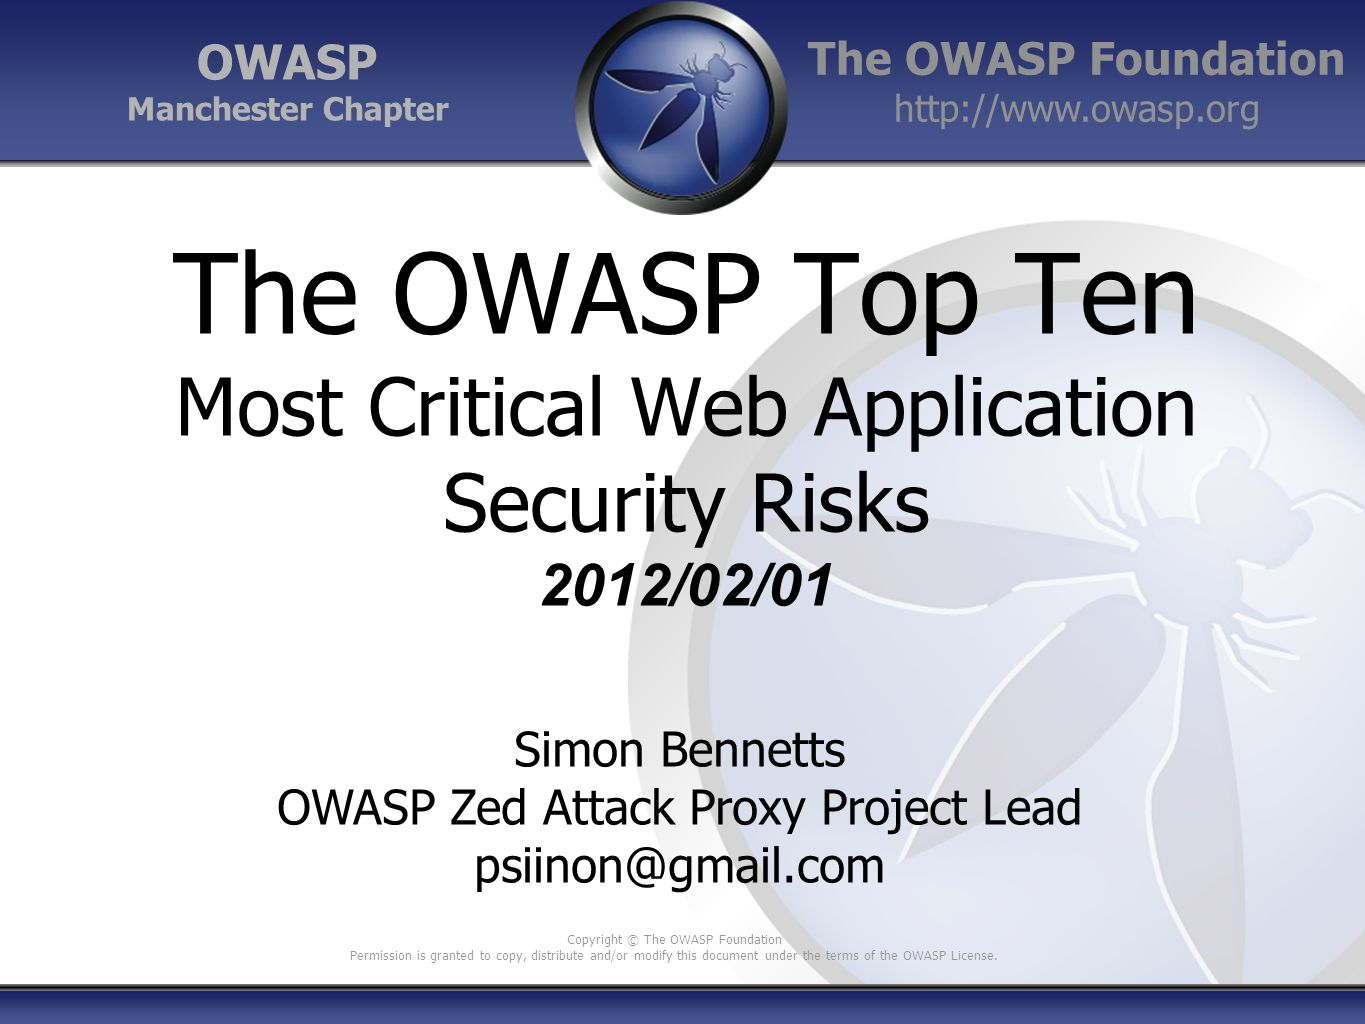 OWASP Zed Attack Proxy Project Lead